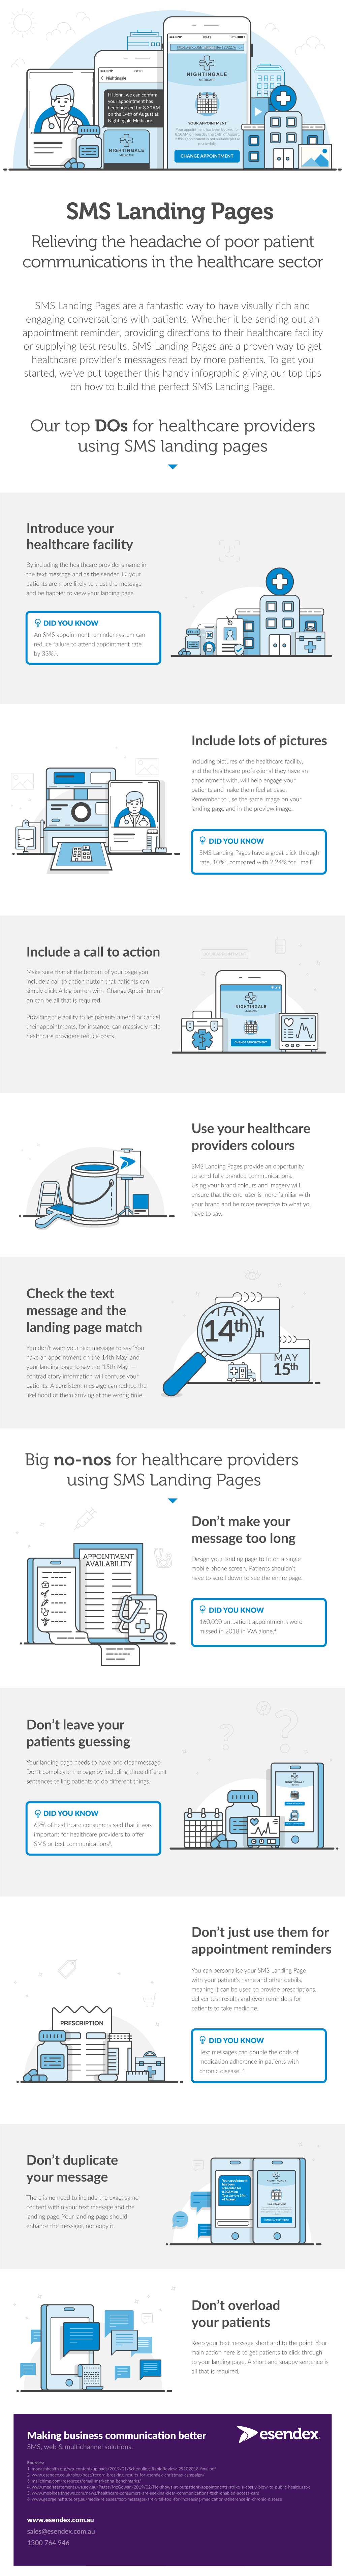 Illustration on how SMS Landing Pages can help healthcare providers